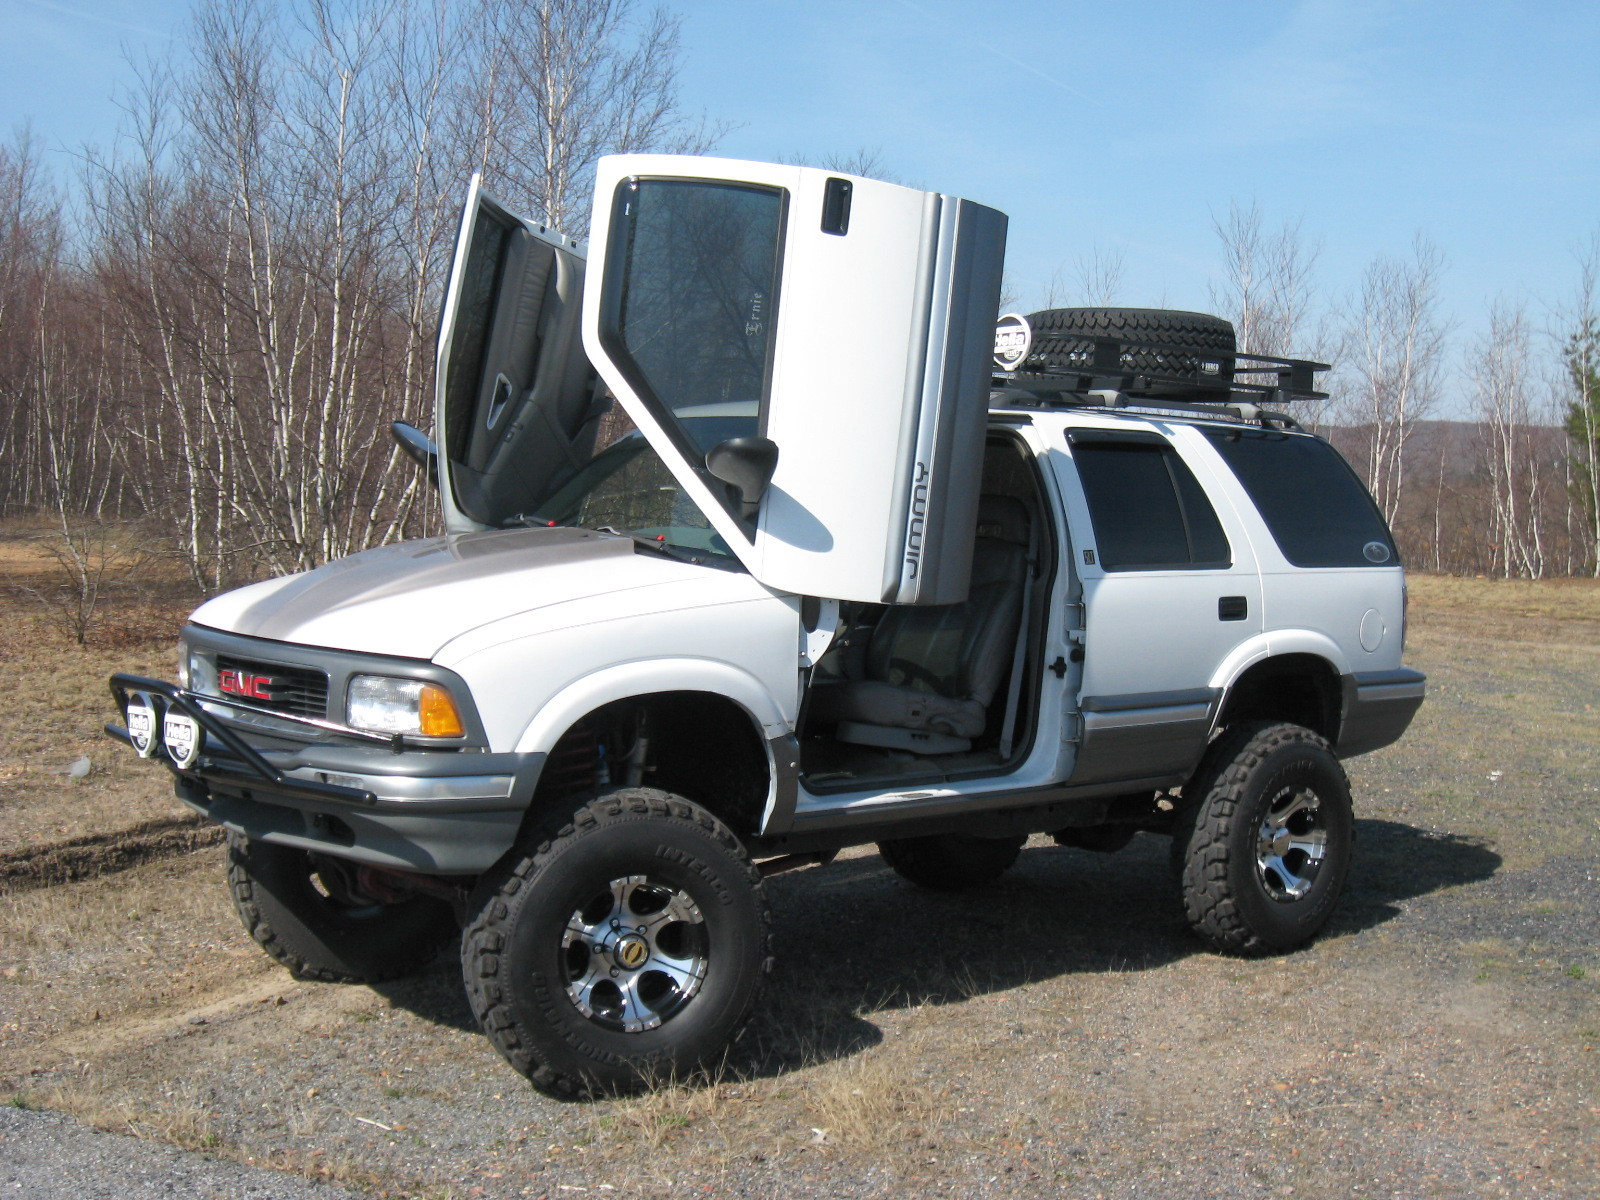 gmc jimmy images #9